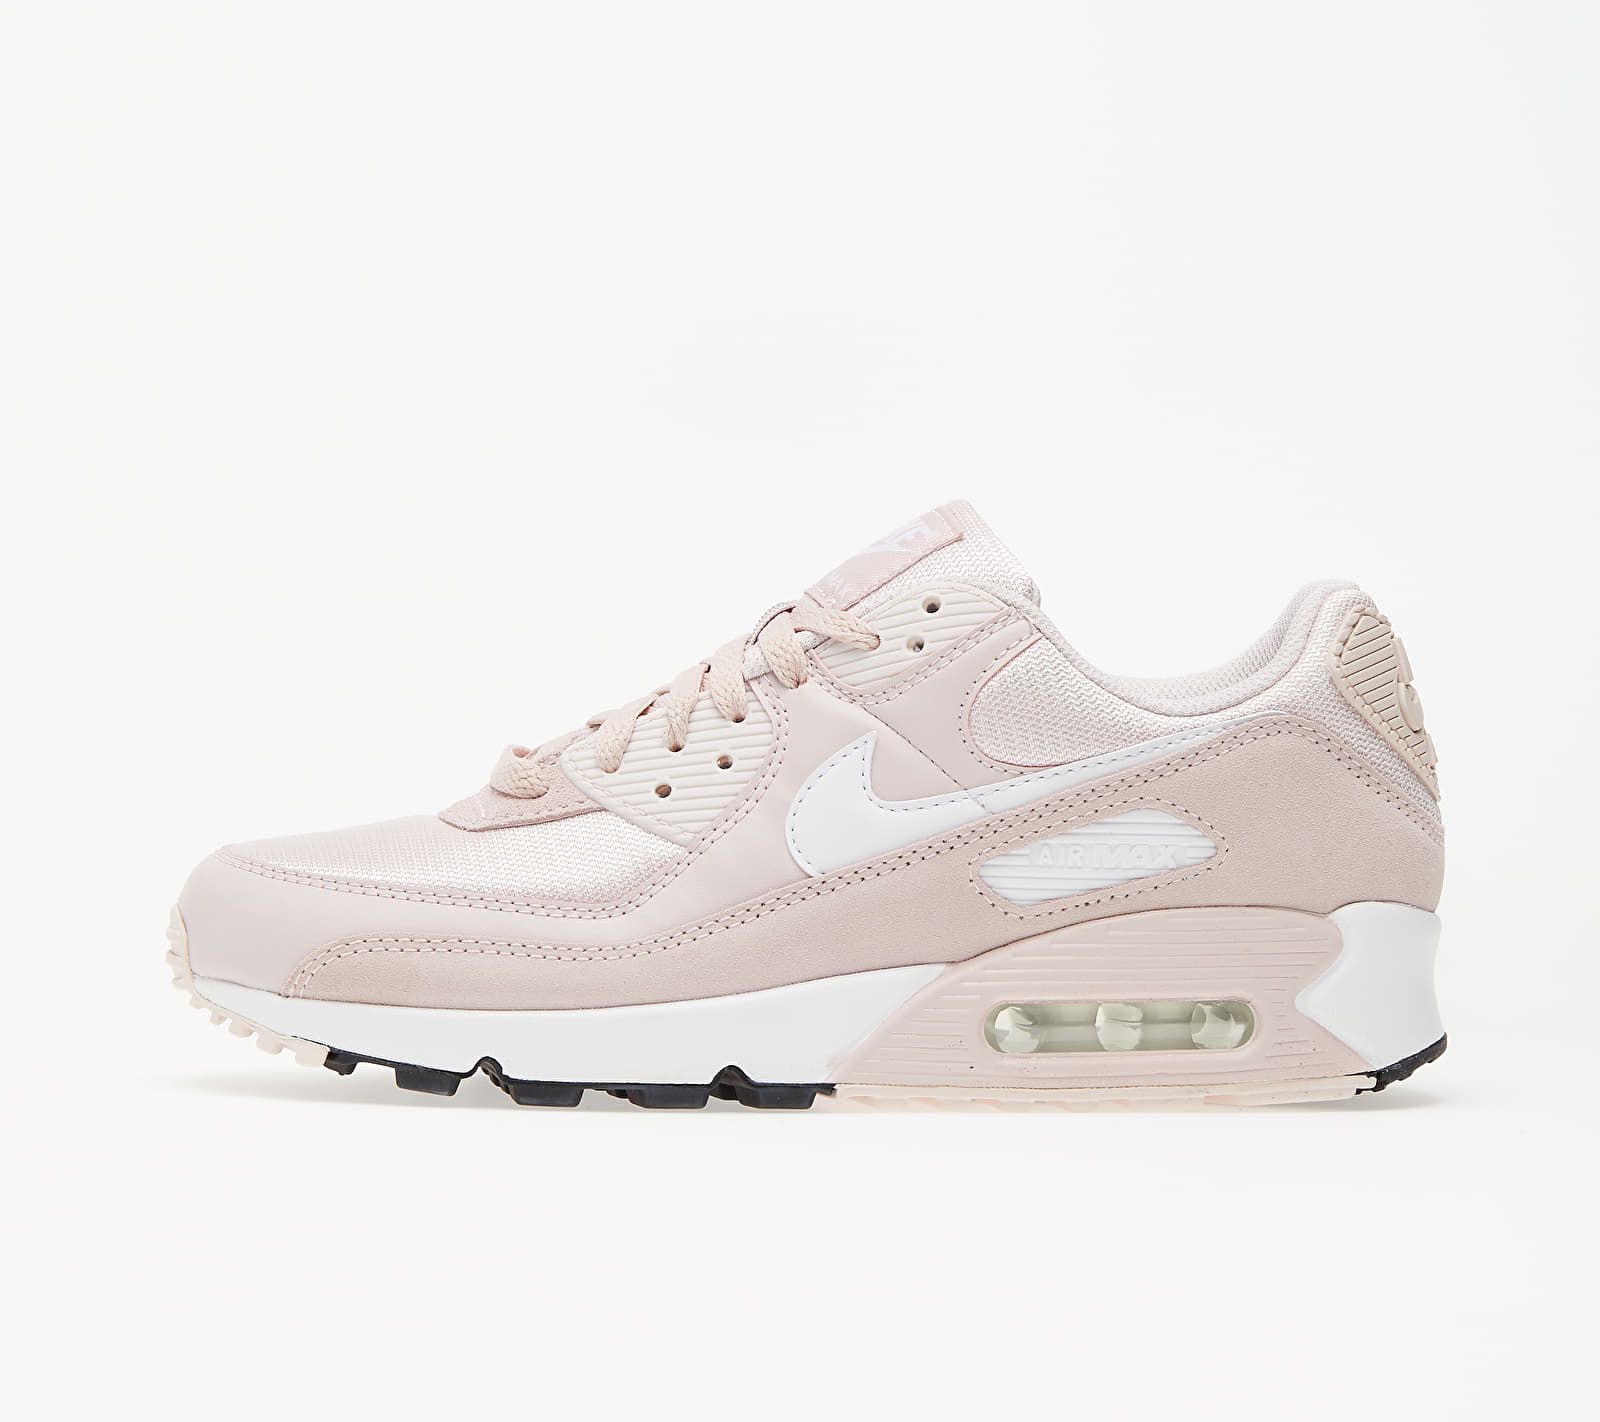 Nike Air Max 90 Barely Rose/ White-Black EUR 38.5